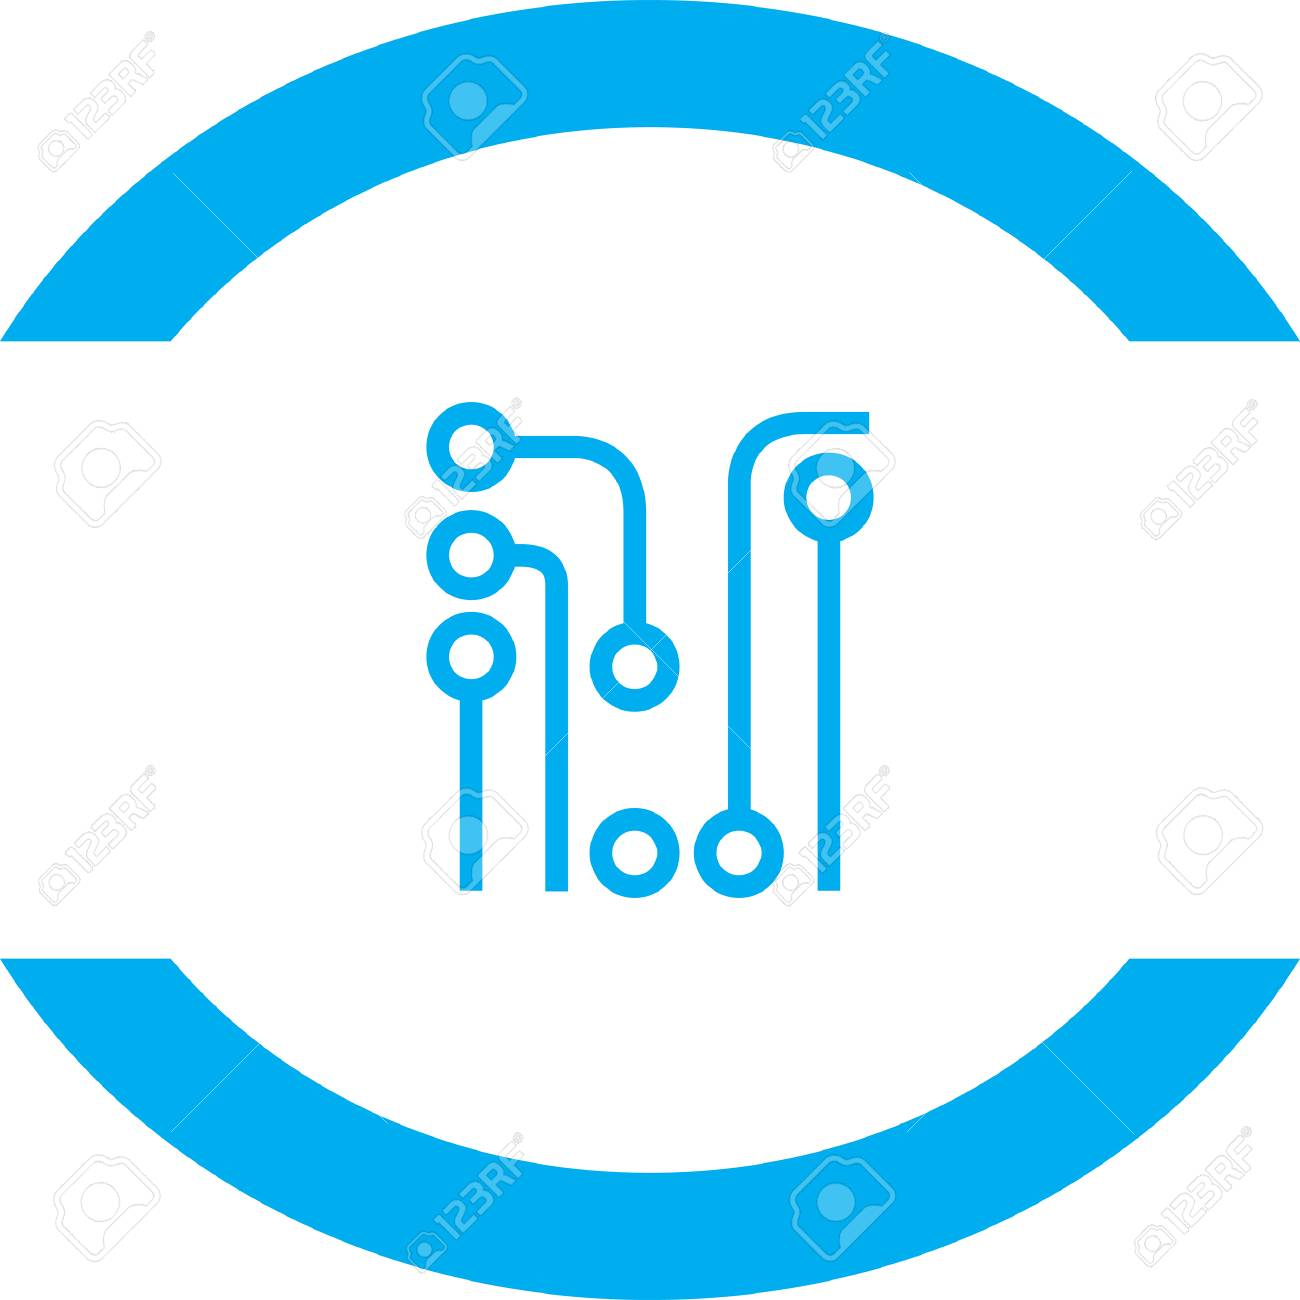 circuit board vector icon royalty free cliparts vectors and stock rh 123rf com circuit board vector blue circuit board vector graphics